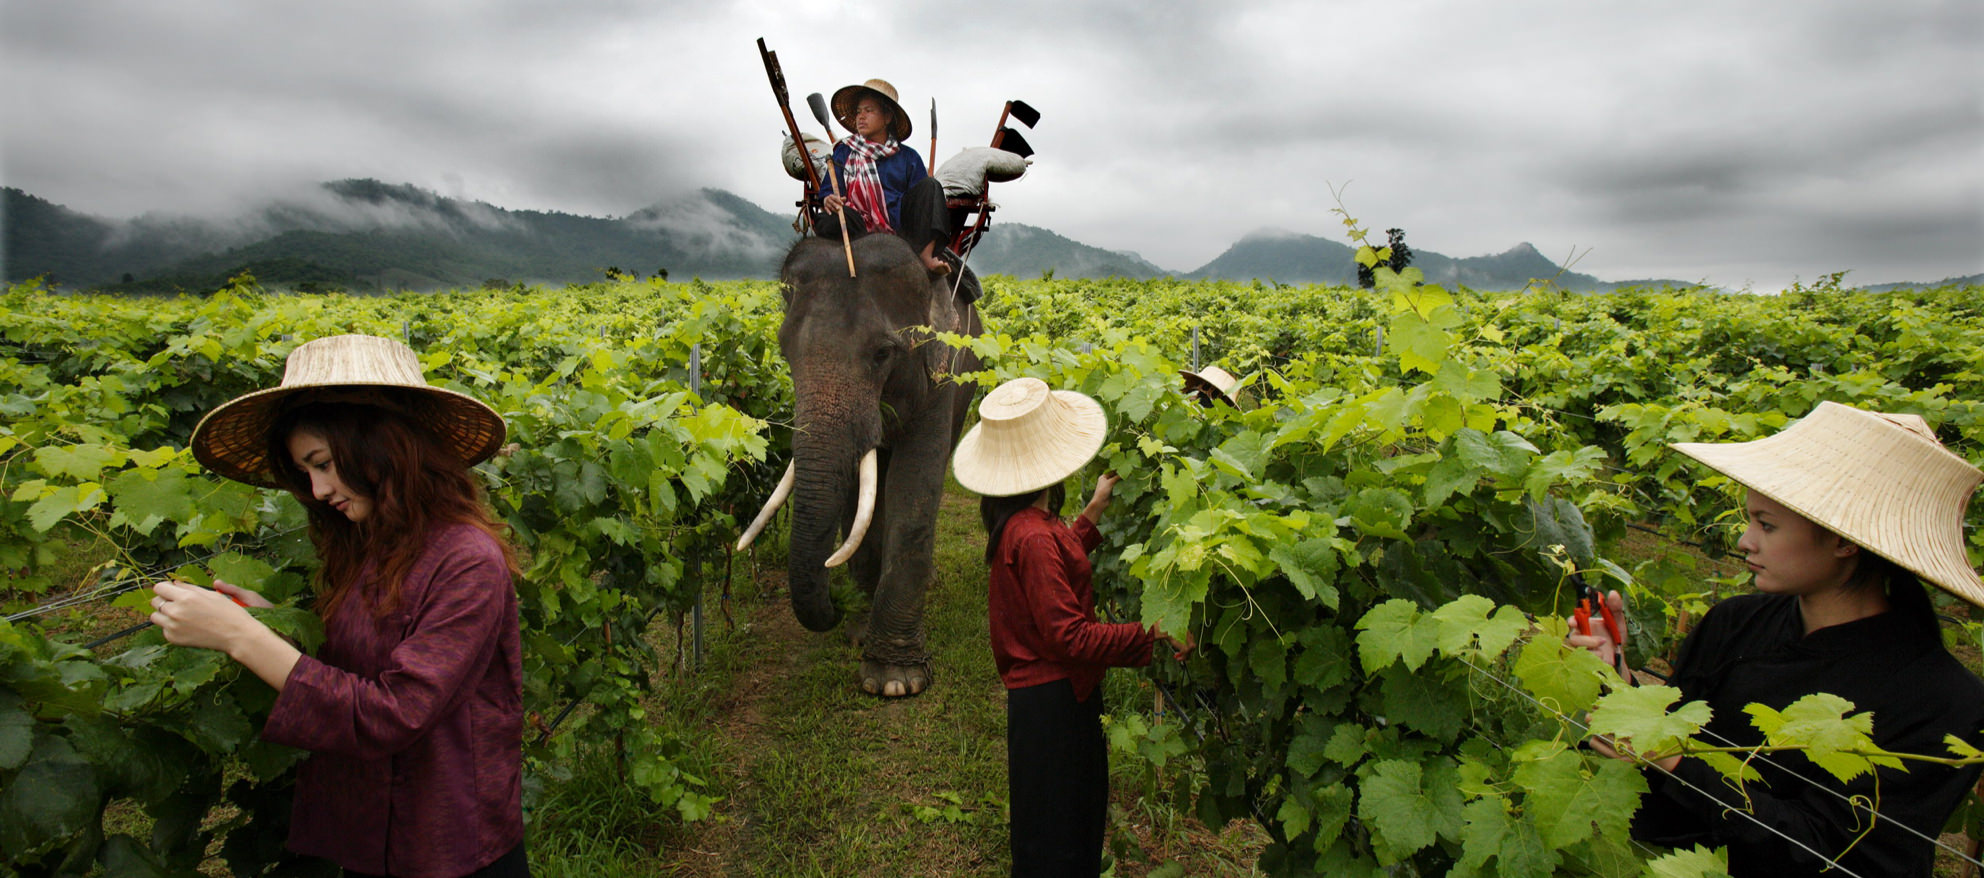 explore-huahin-hill-vineyard-2